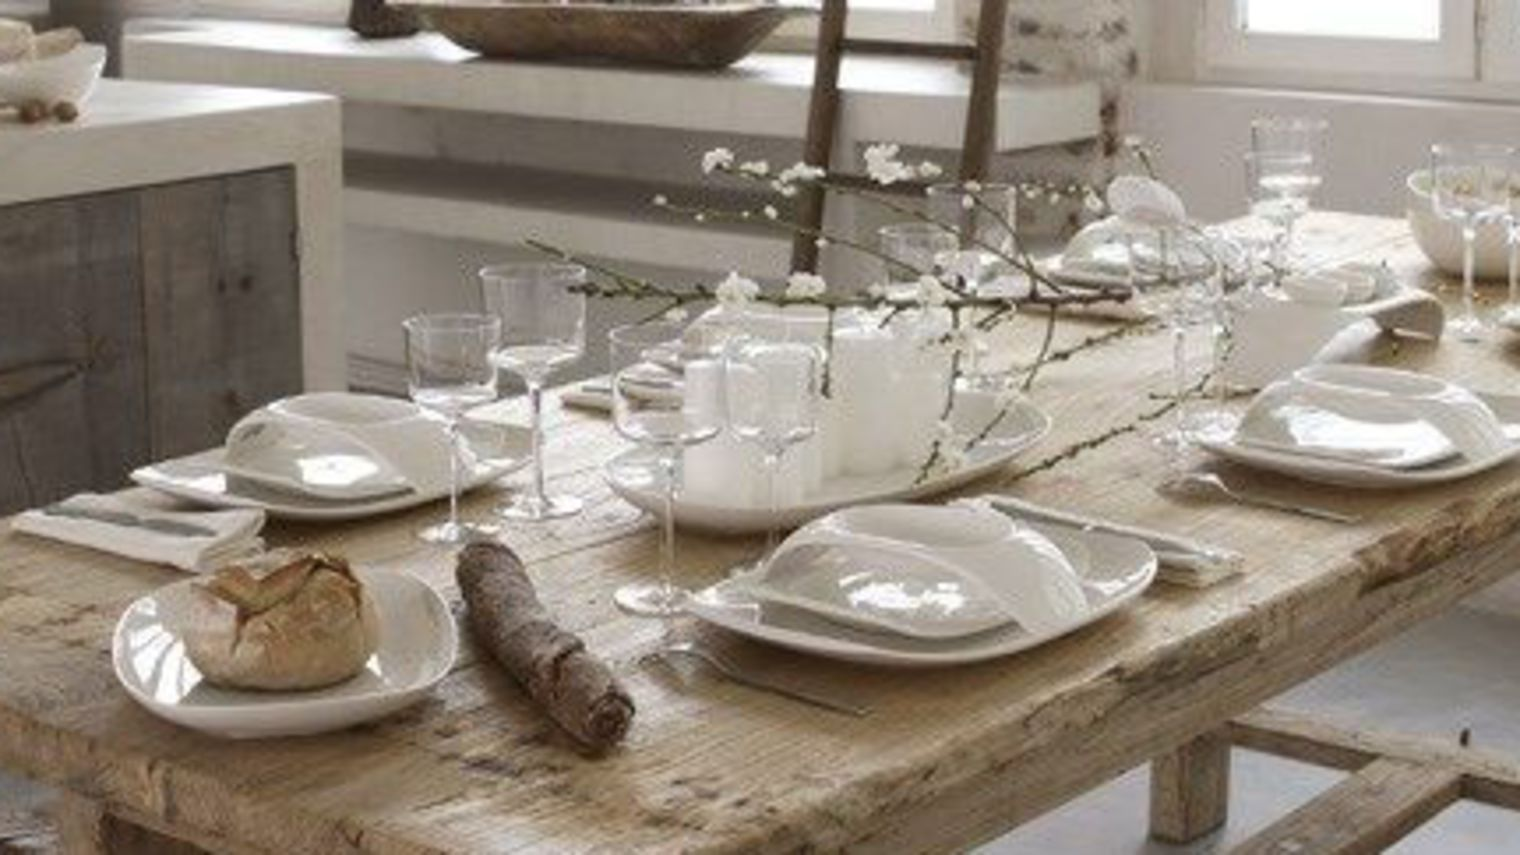 Comment faire une belle table for Decoration de table de noel